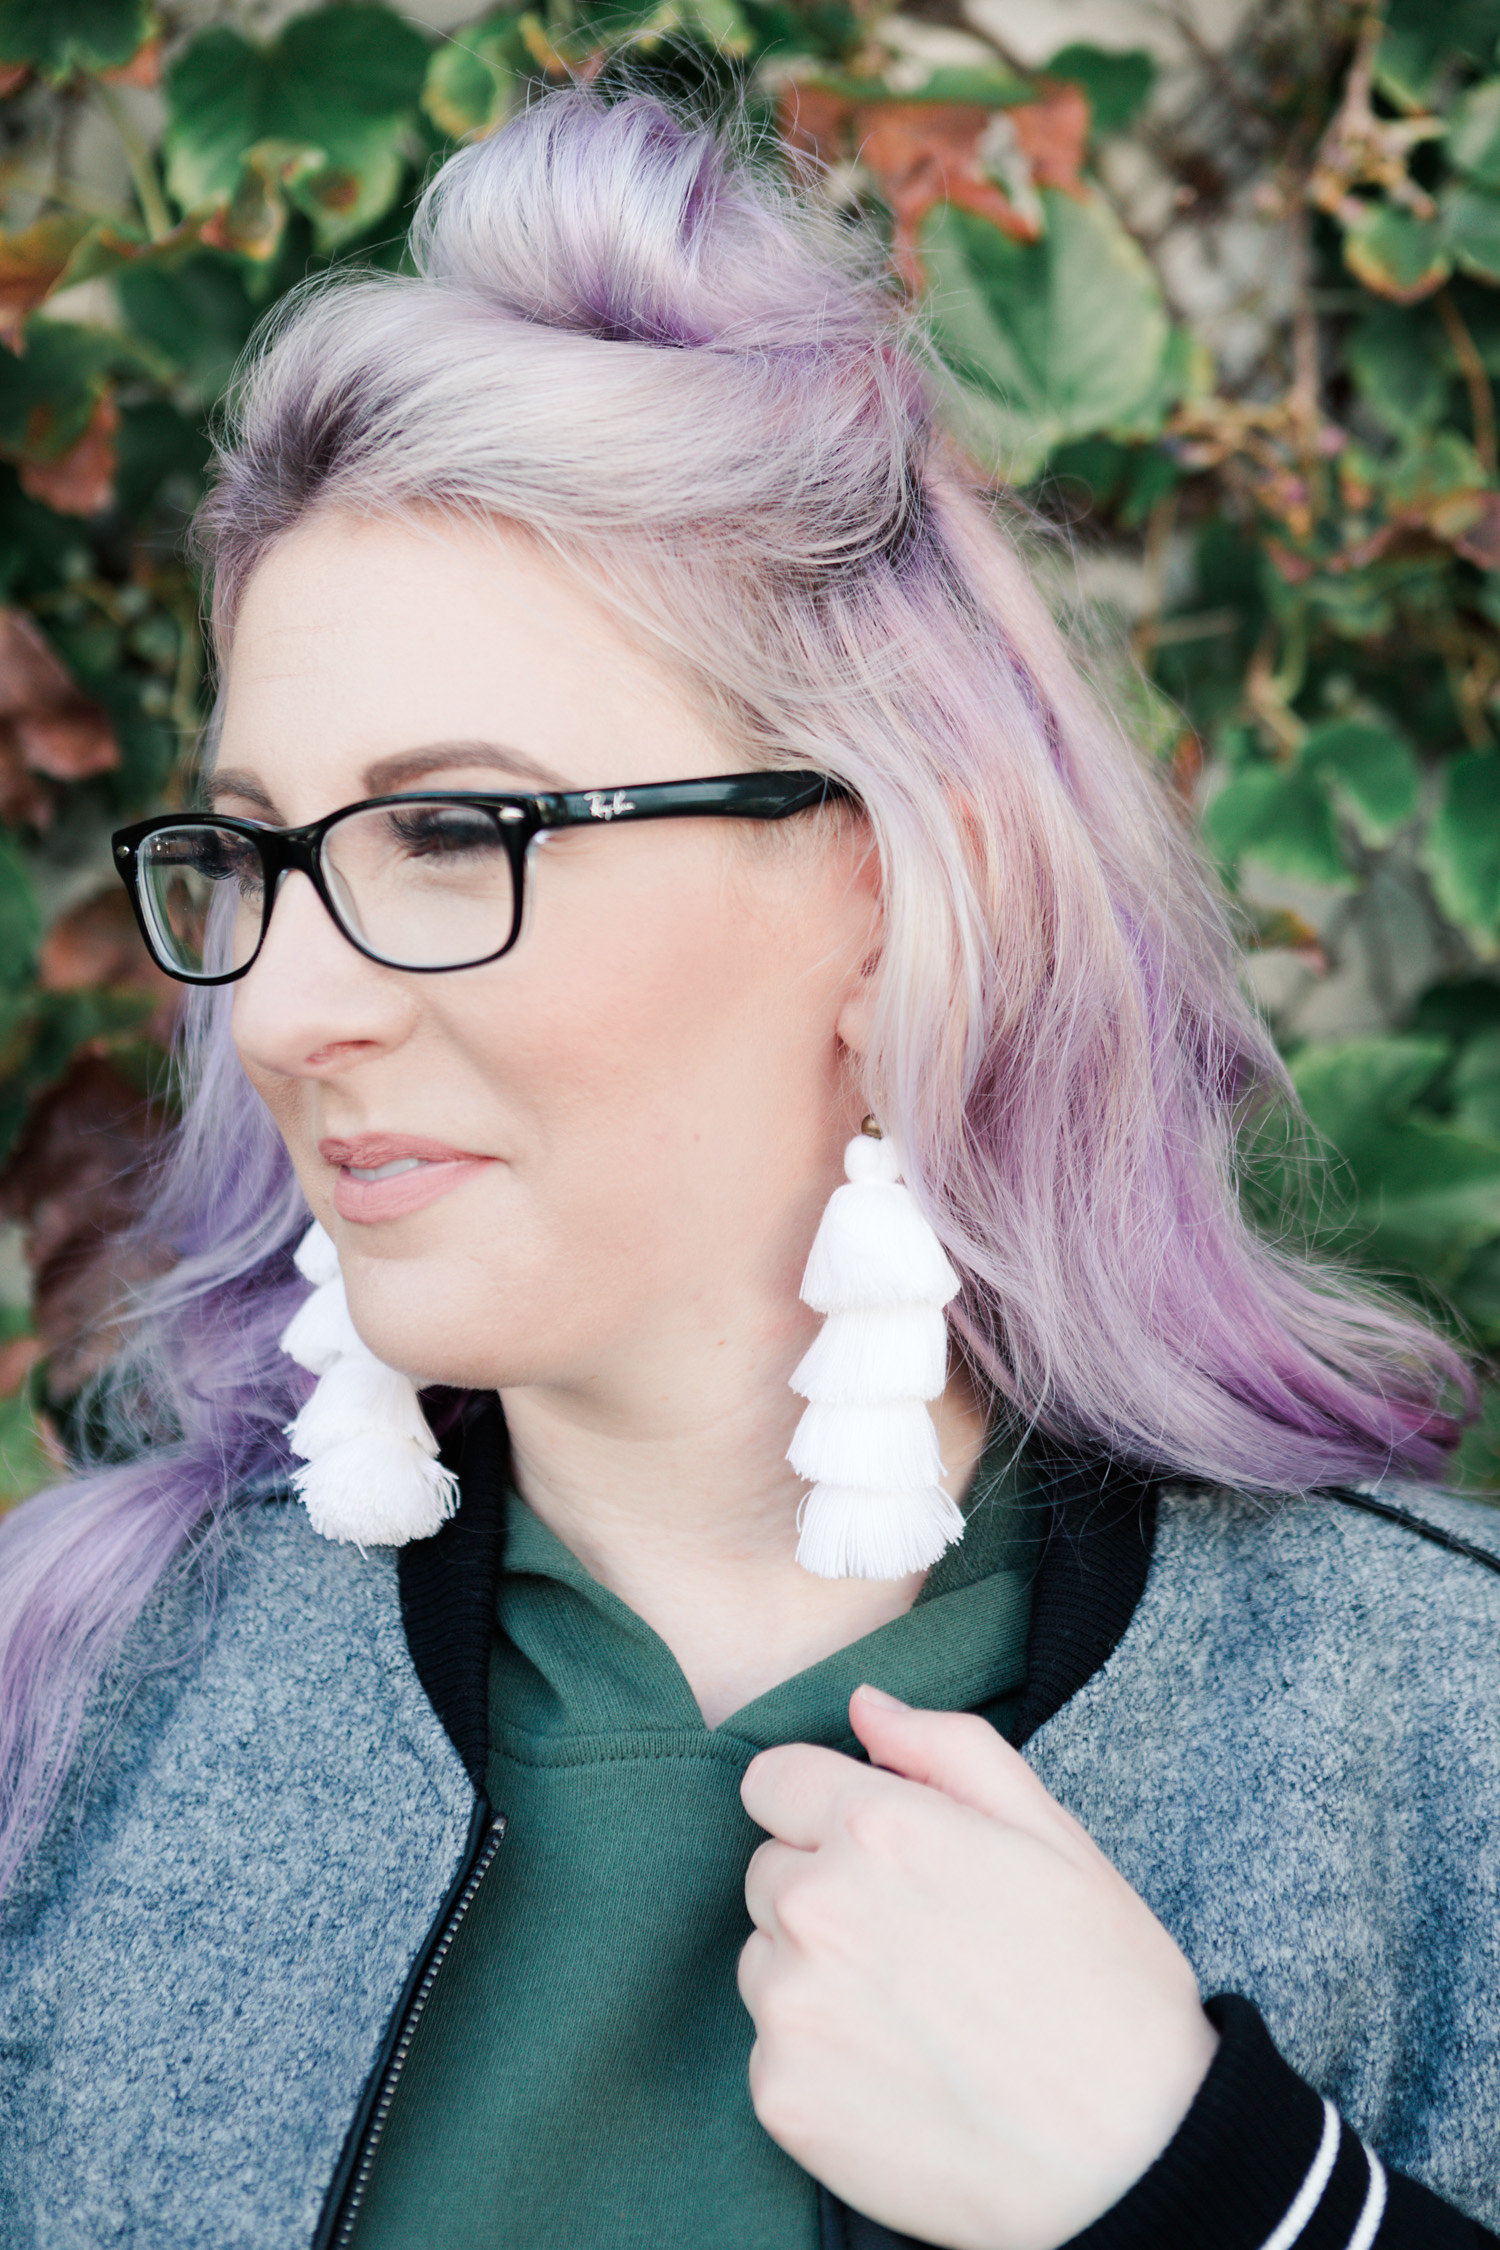 tassel earrings, rayban glasses, top bun hairstyle